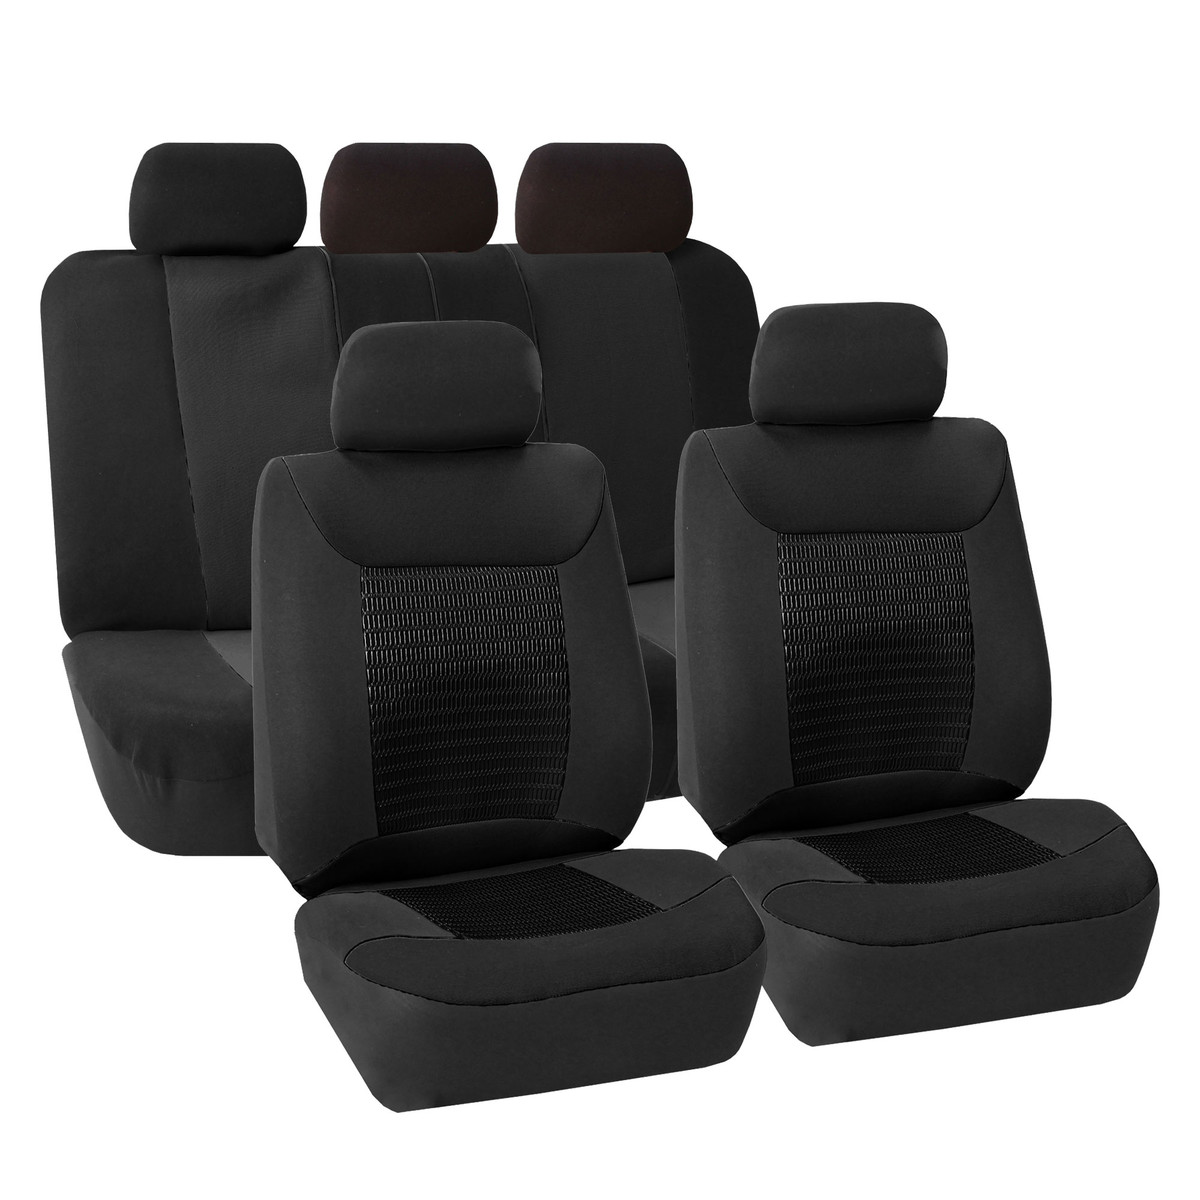 FB062115 black seat cover 1